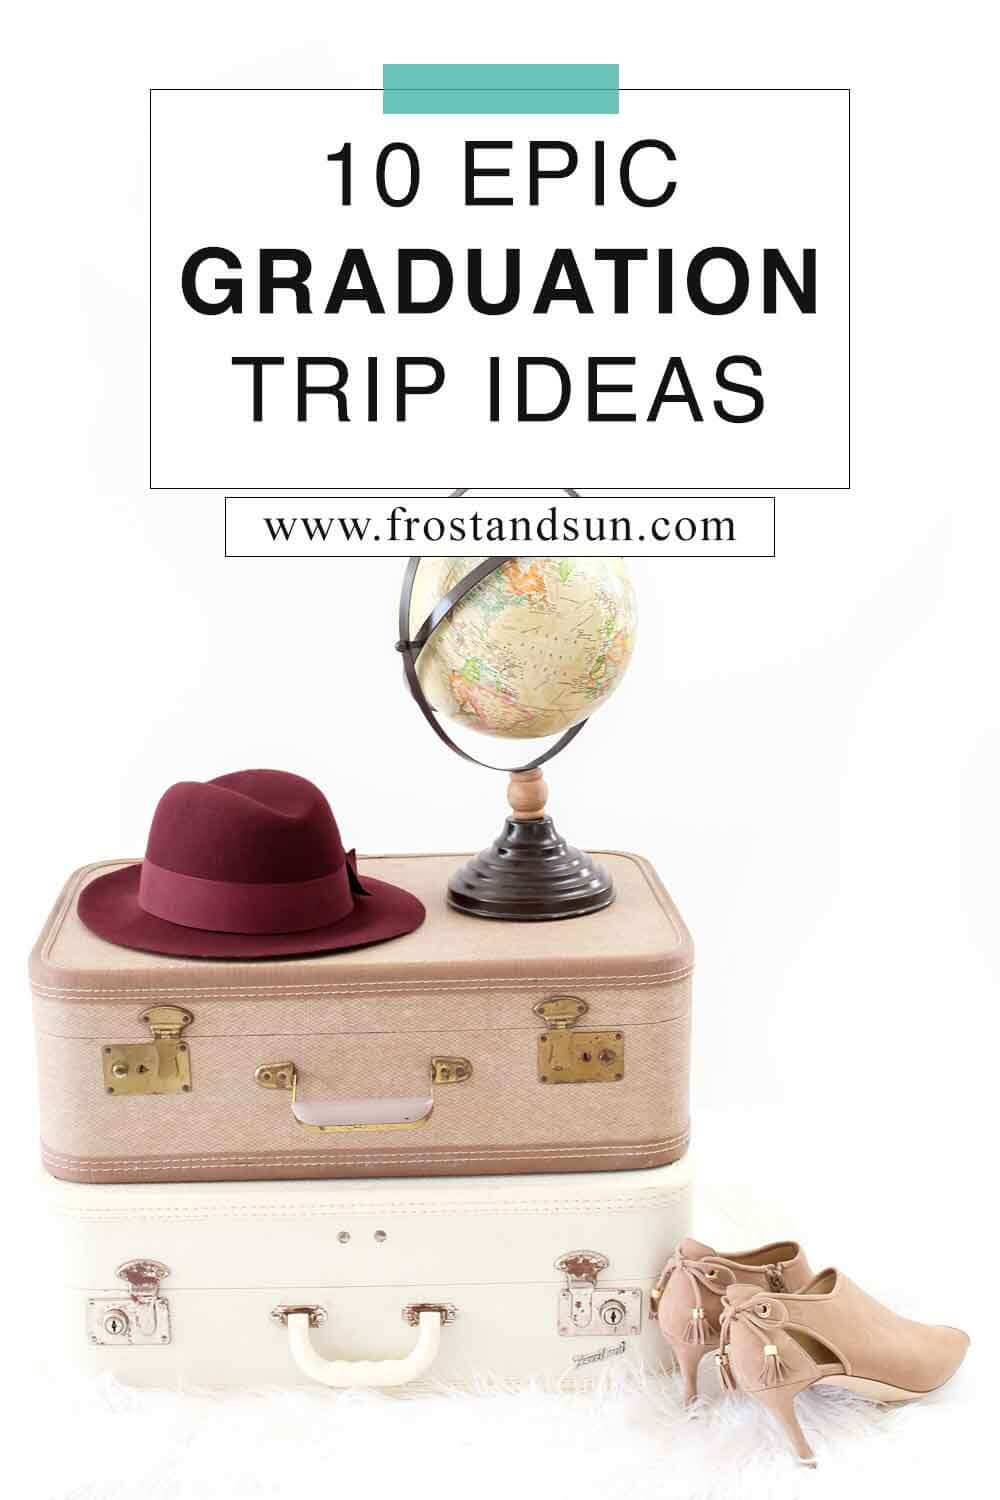 10 Graduation Trip Ideas that are Perfect for a Graduation Gift